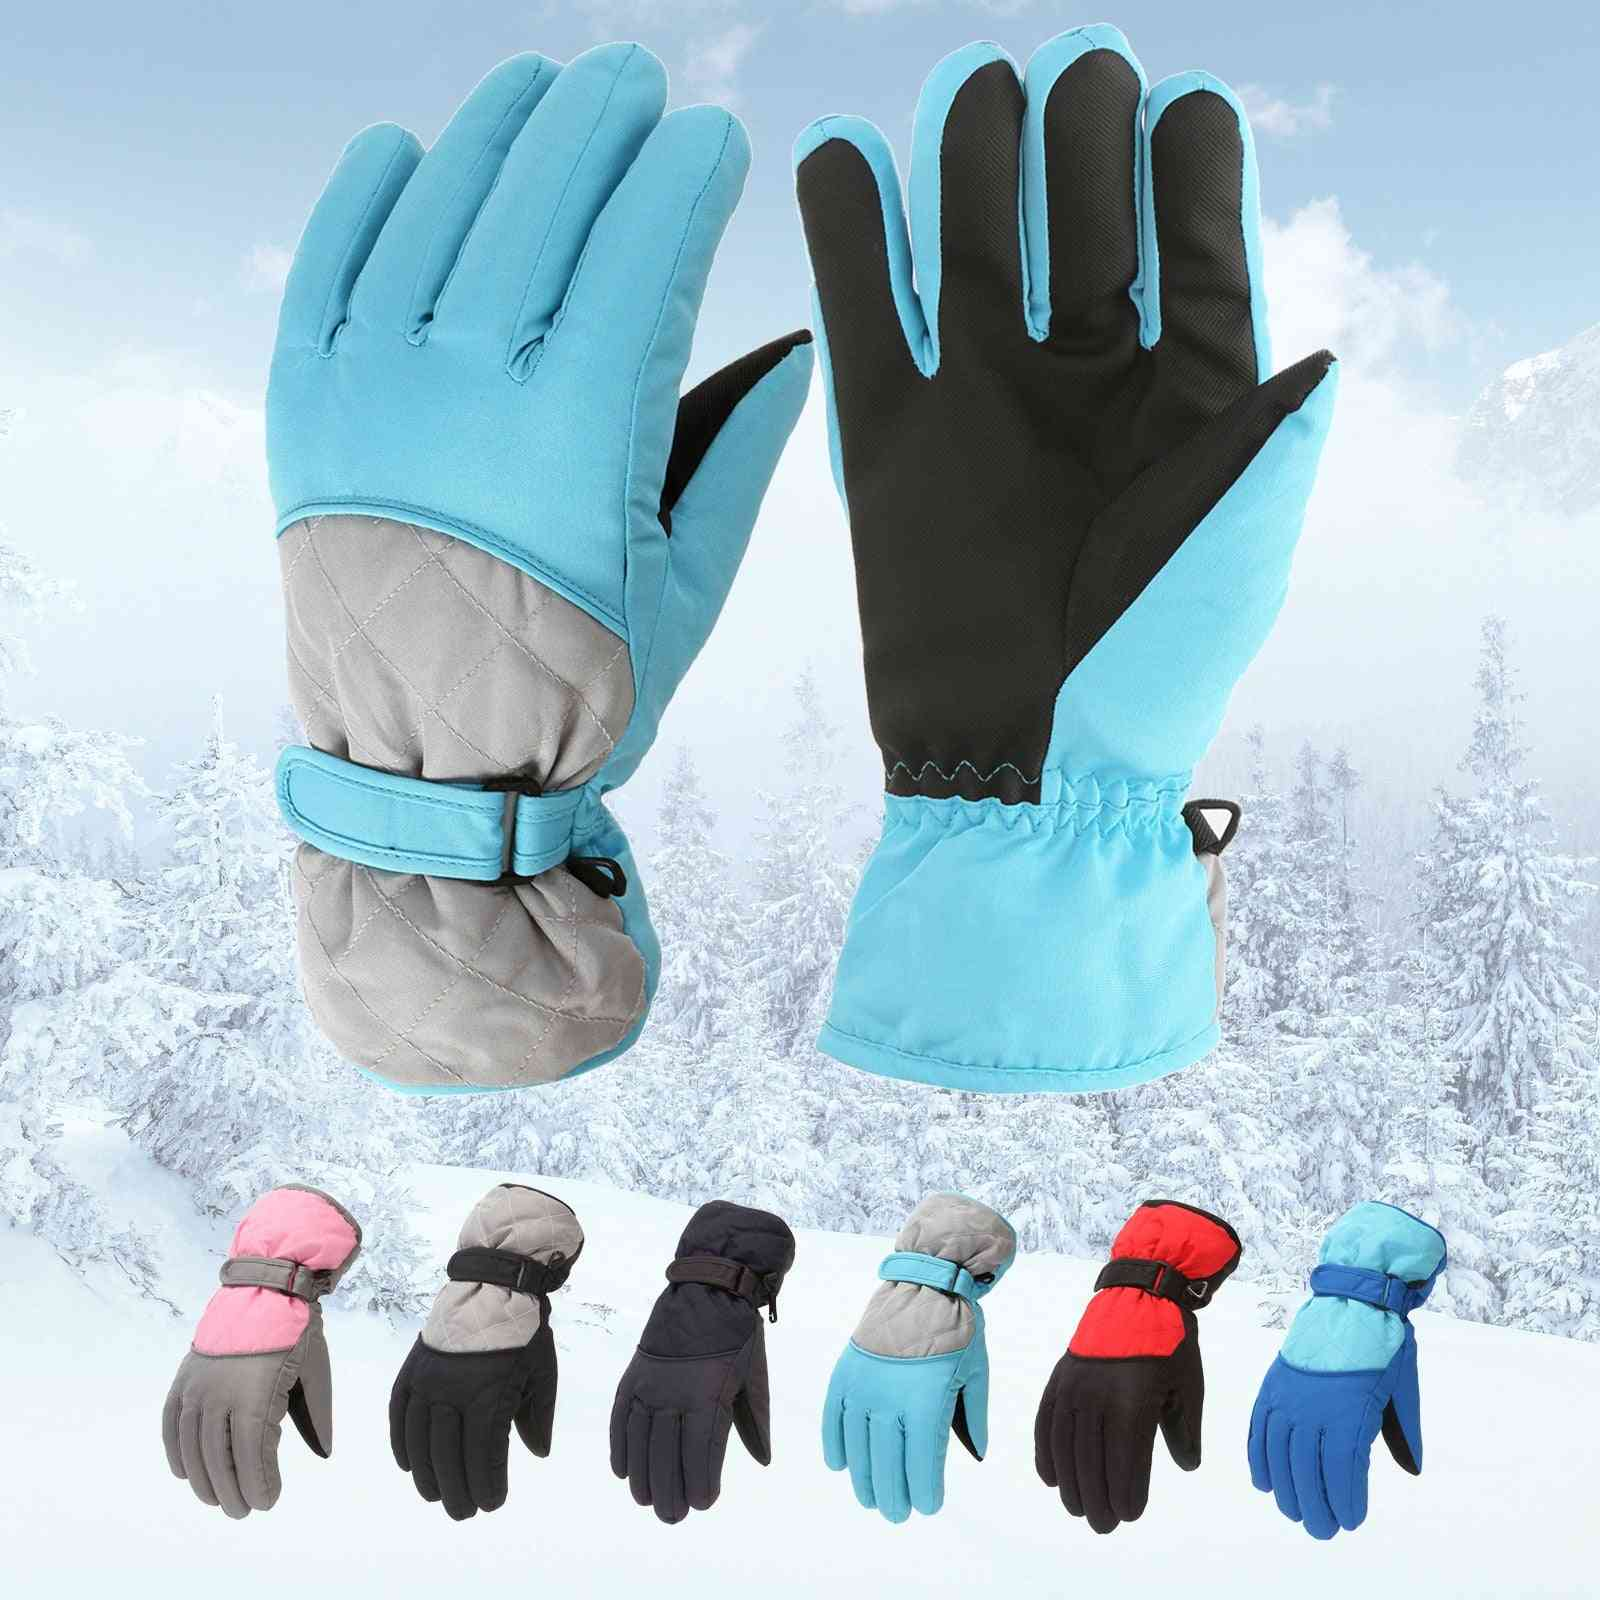 Kids Windproof Mittens Cycling Bicycle Bike Outdoor Camping Sports Ski Warm Gloves 6-11years